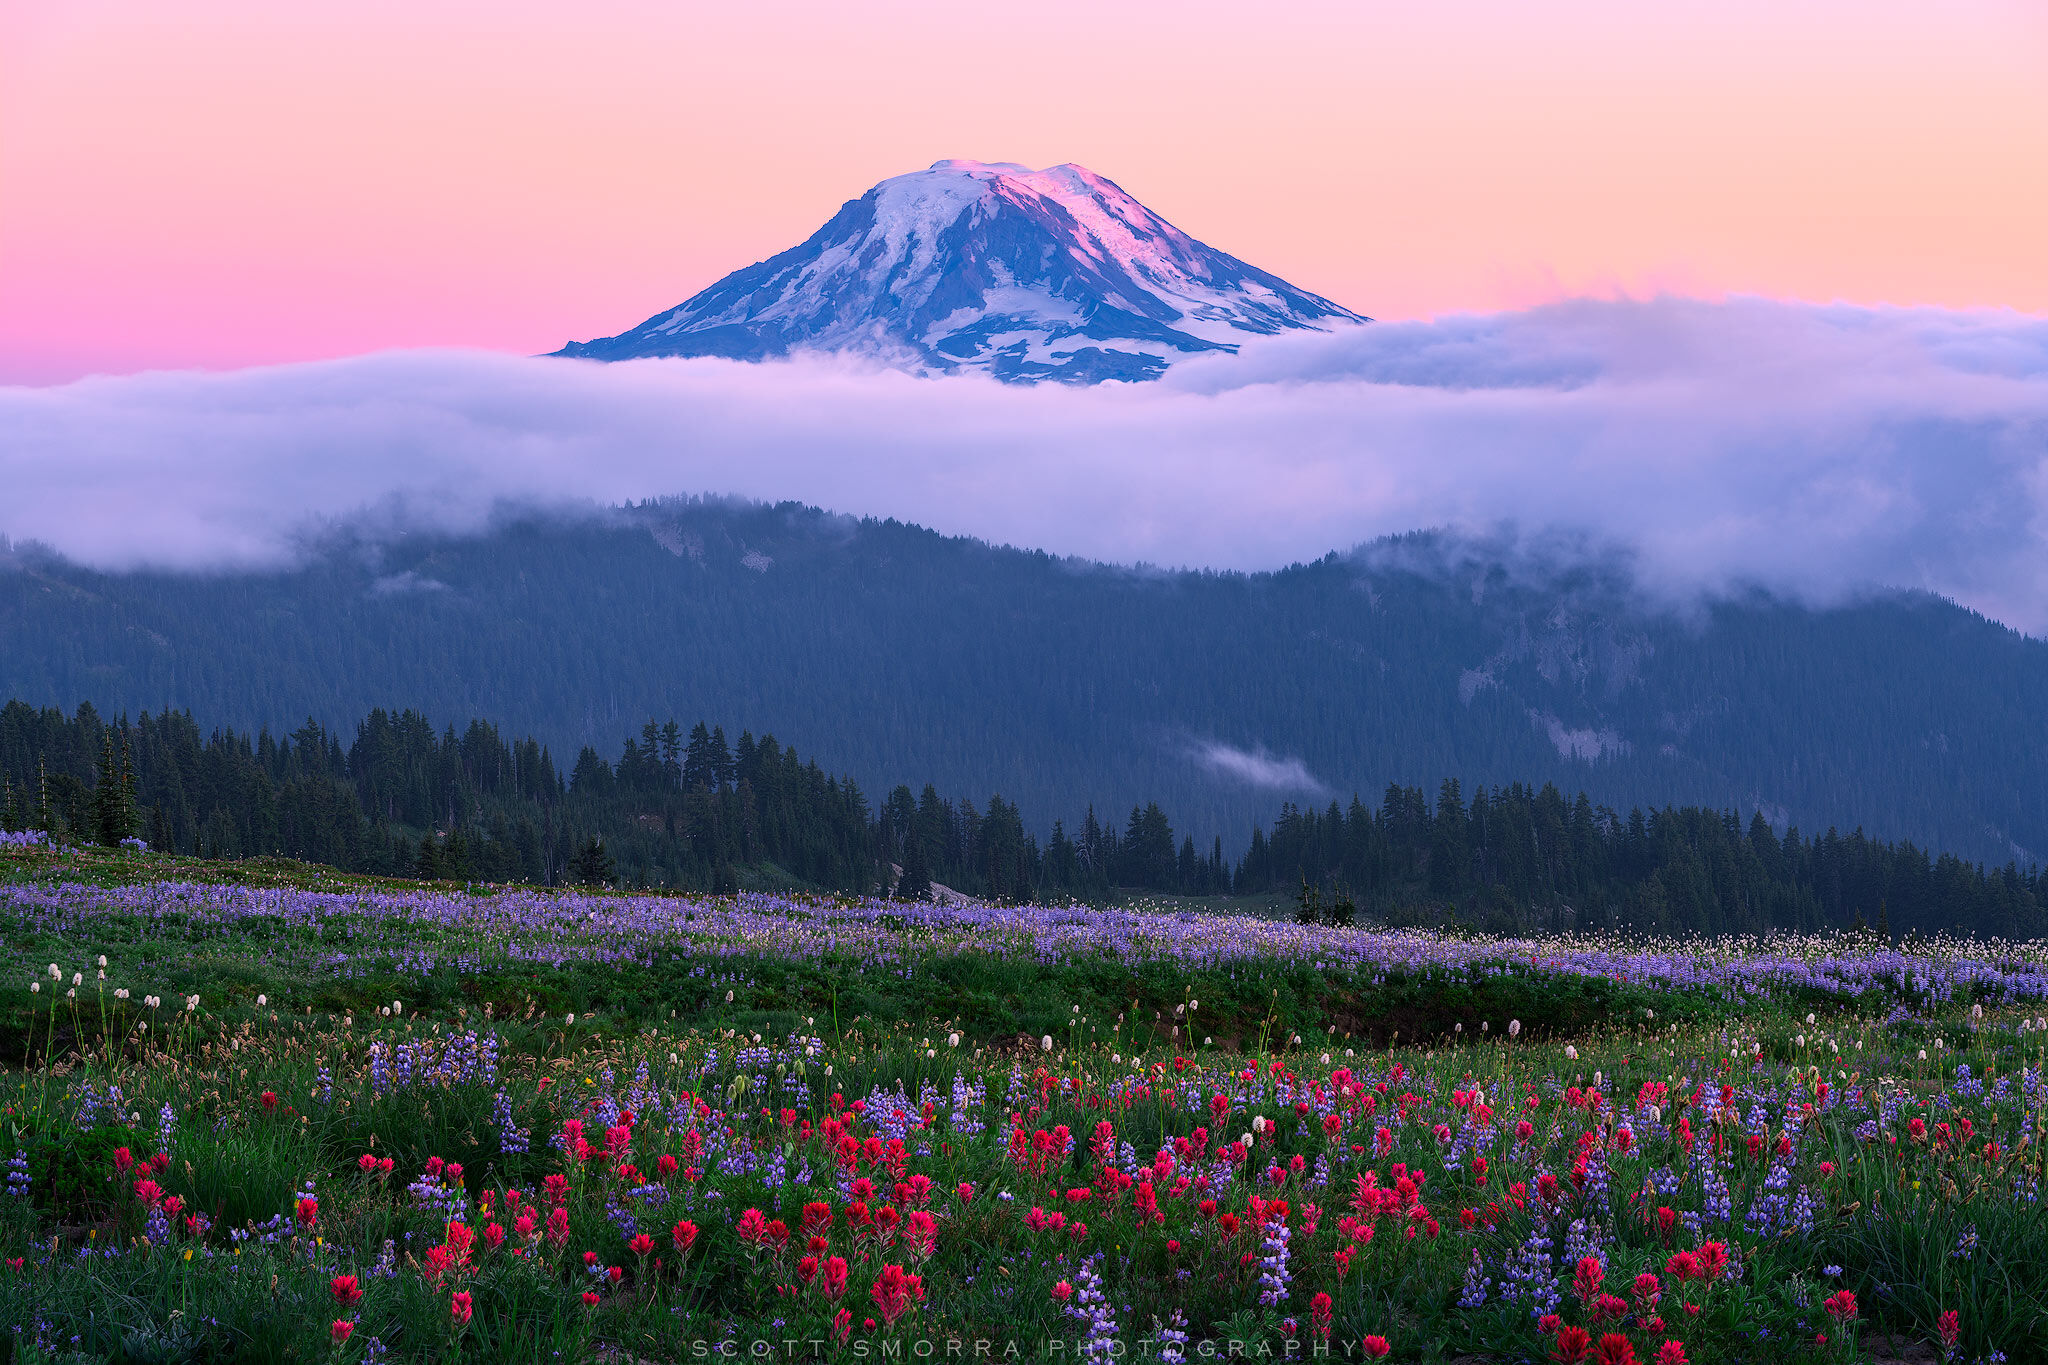 Fine Art Limited Edition of 100 - Summer wildflowers (lupine and paintbrush) and sunset alpenglow on Mount Adams from the Goat...